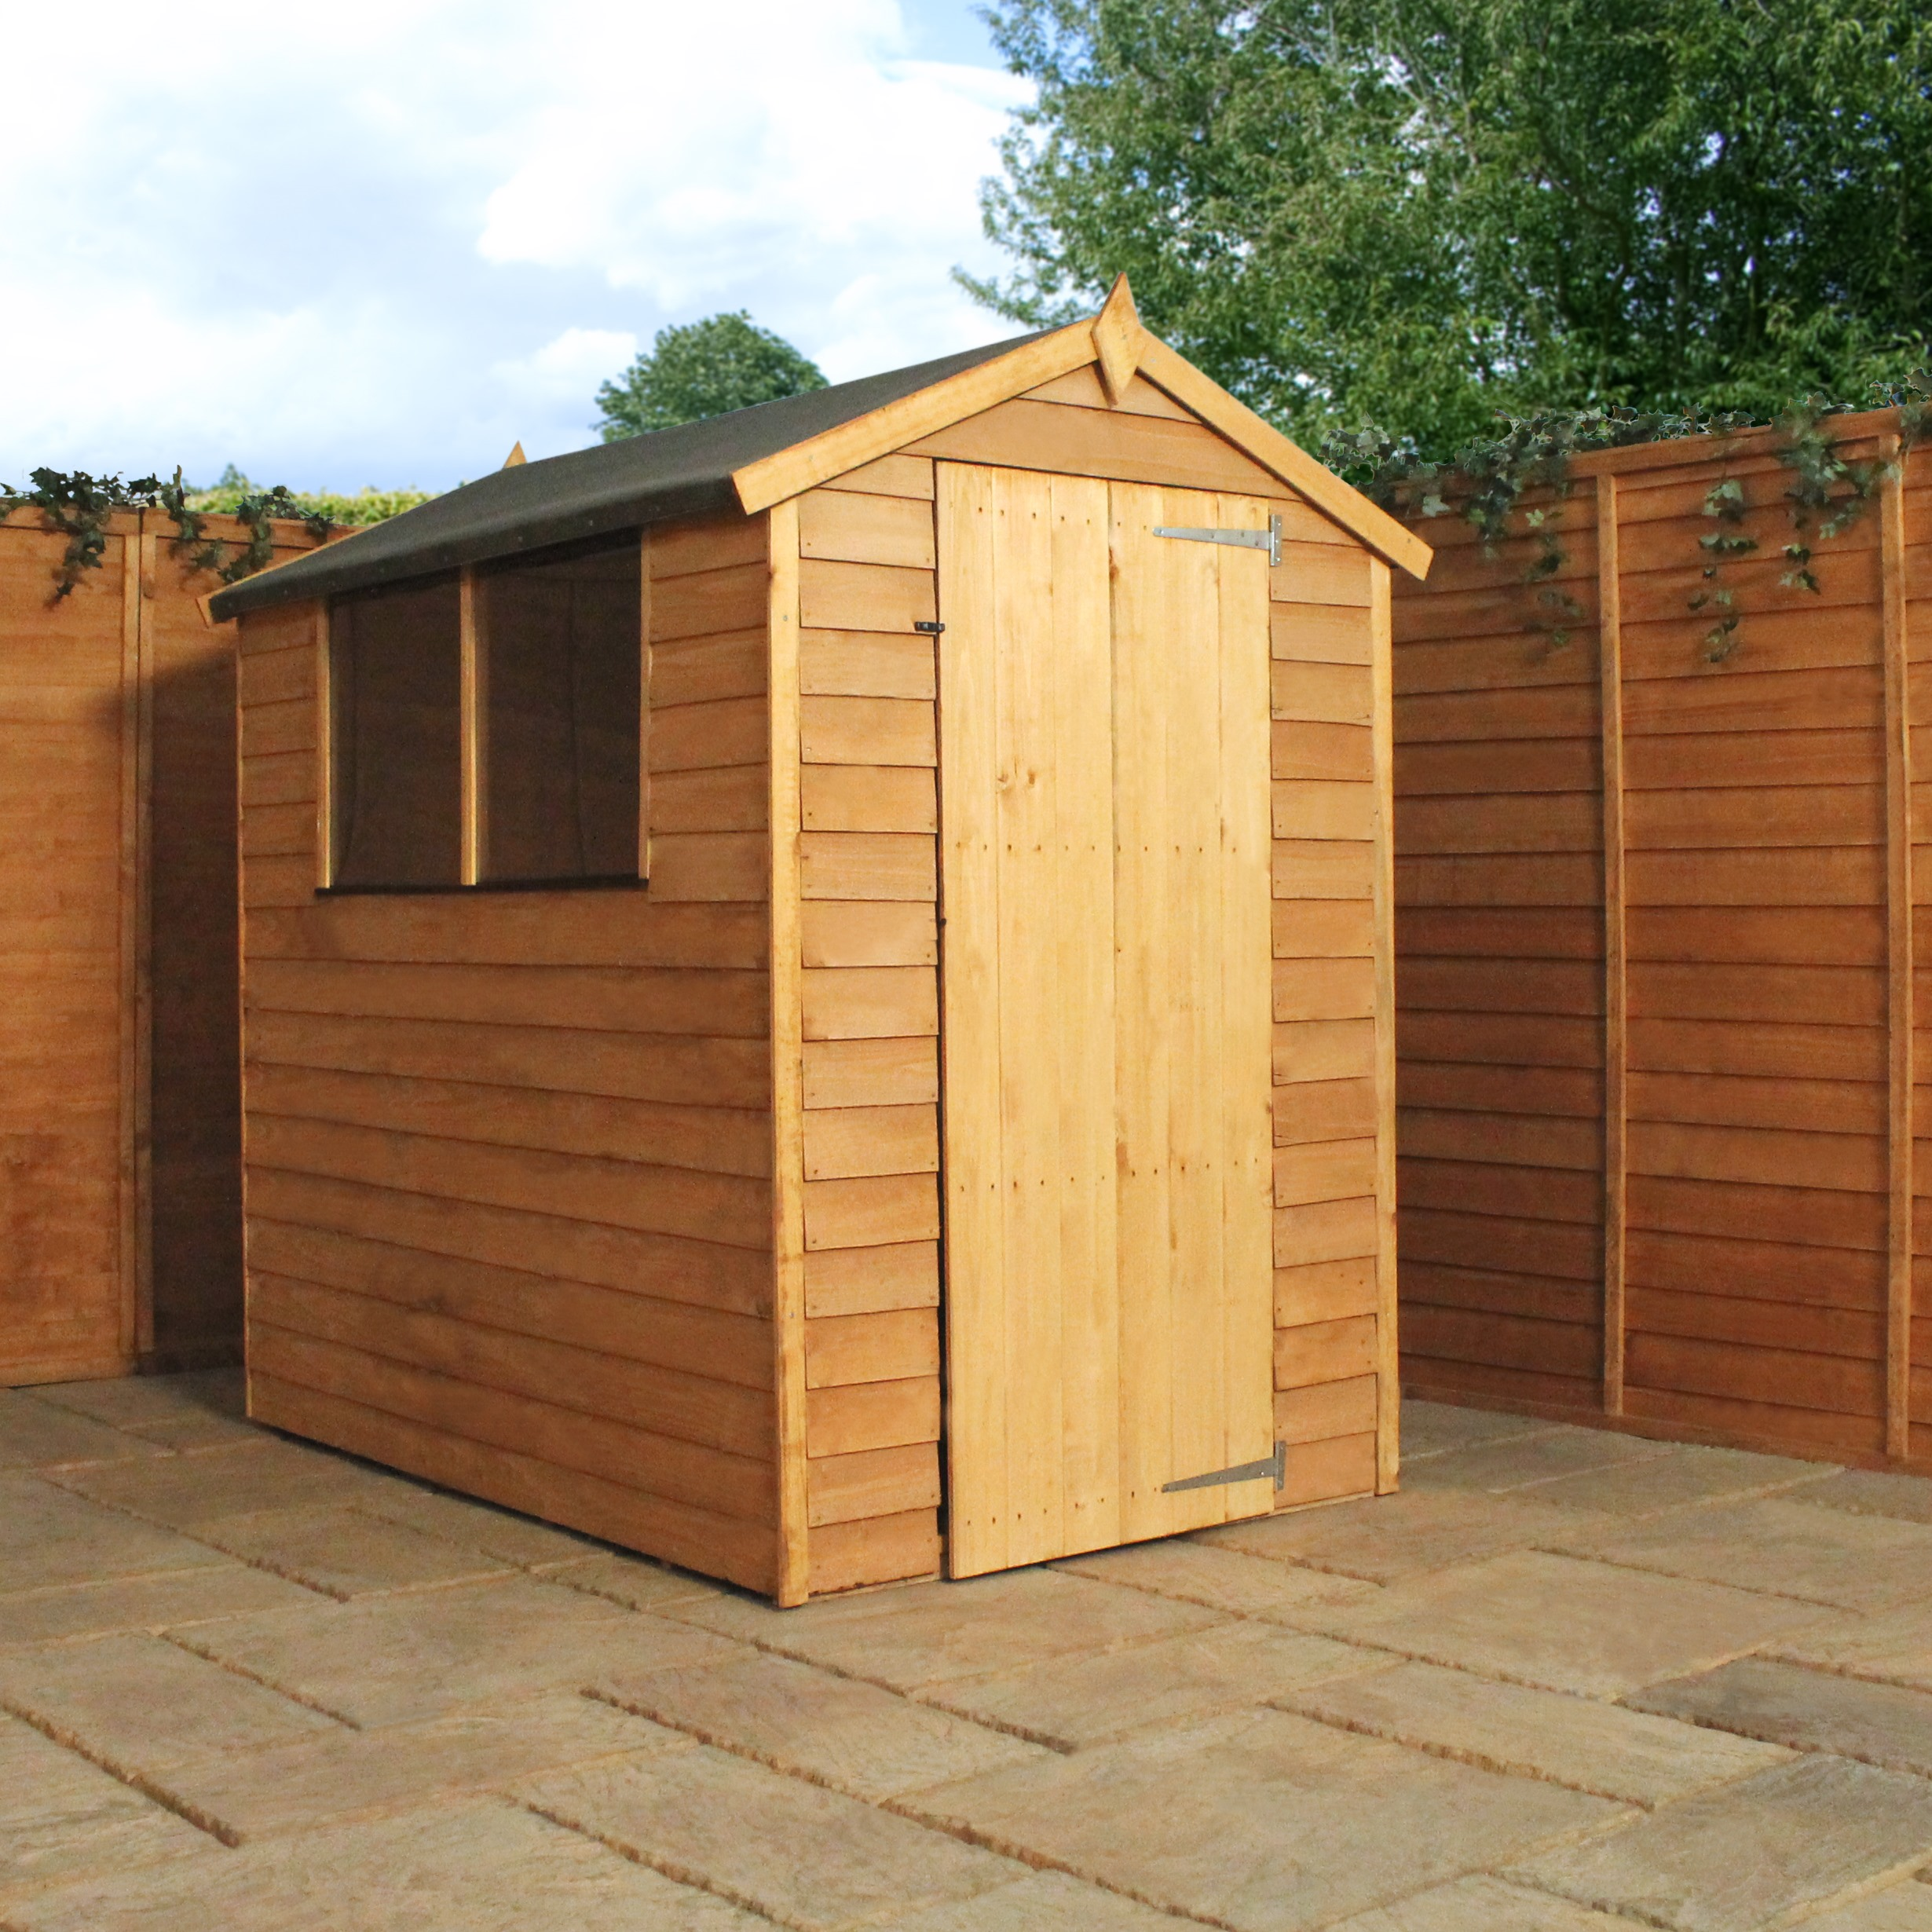 Shedswarehouse Com Oxford 6ft X 4ft 1 79m X 1 31m